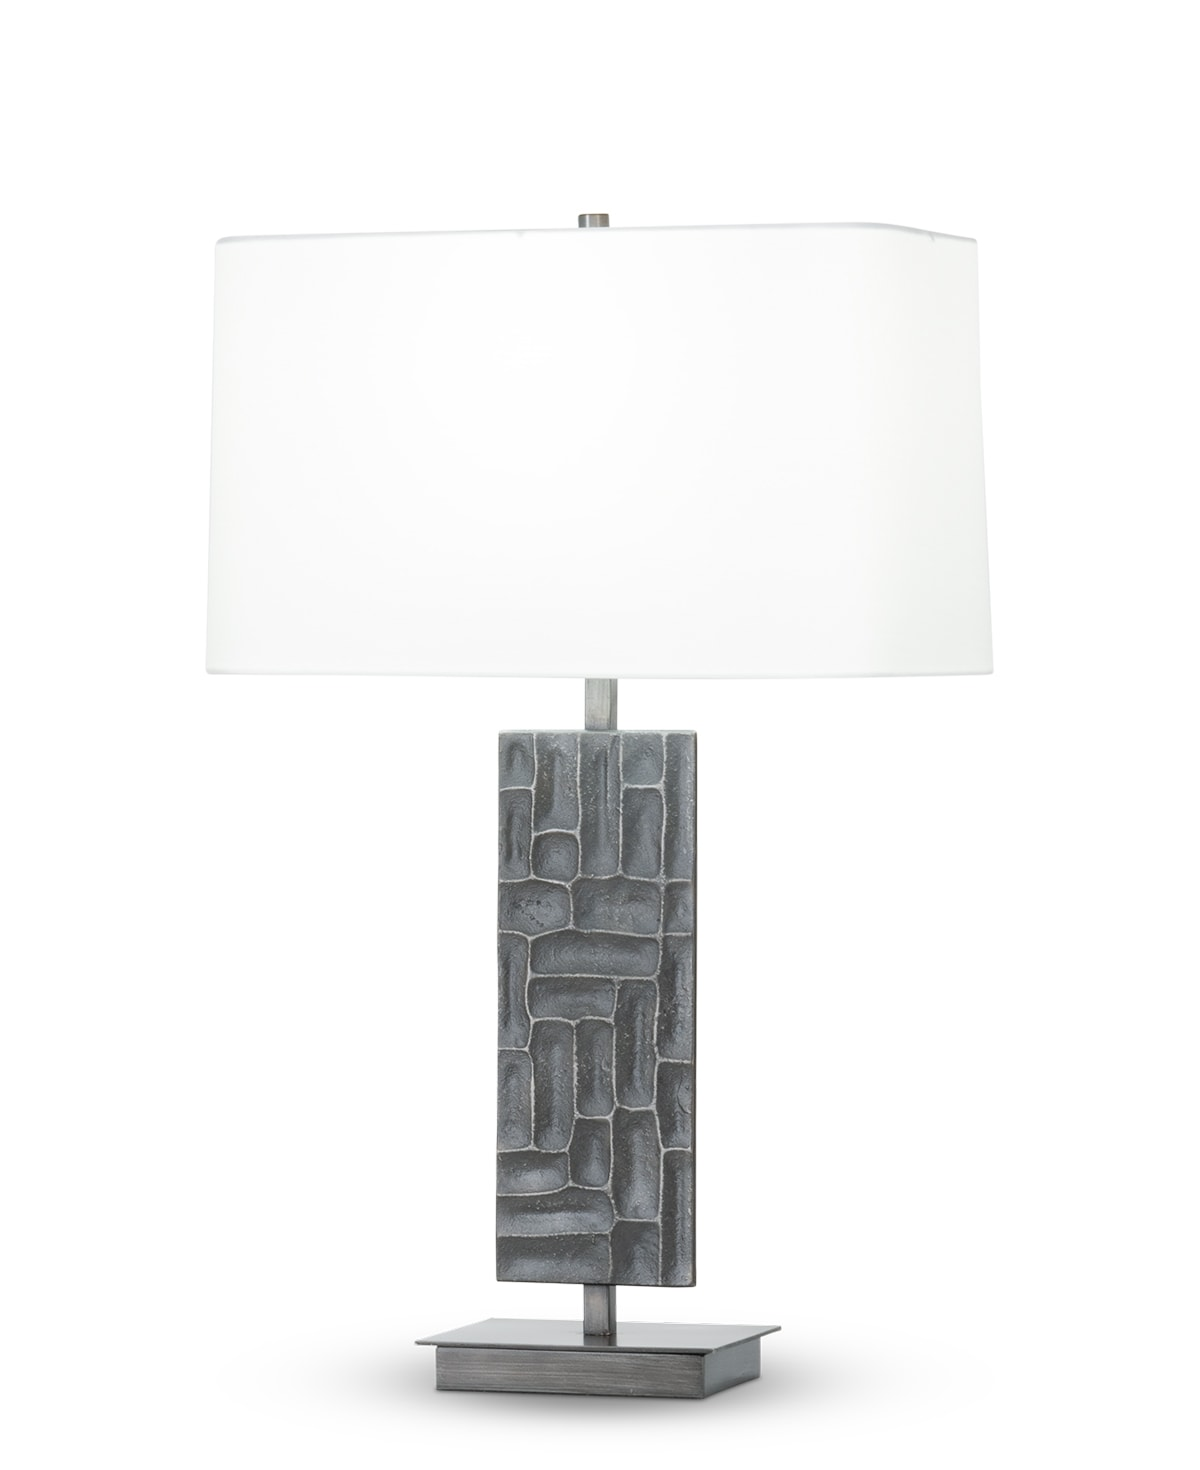 FlowDecor Sybil Table Lamp in metal with antique black finish and off-white cotton rounded rectangle shade (# 4444)